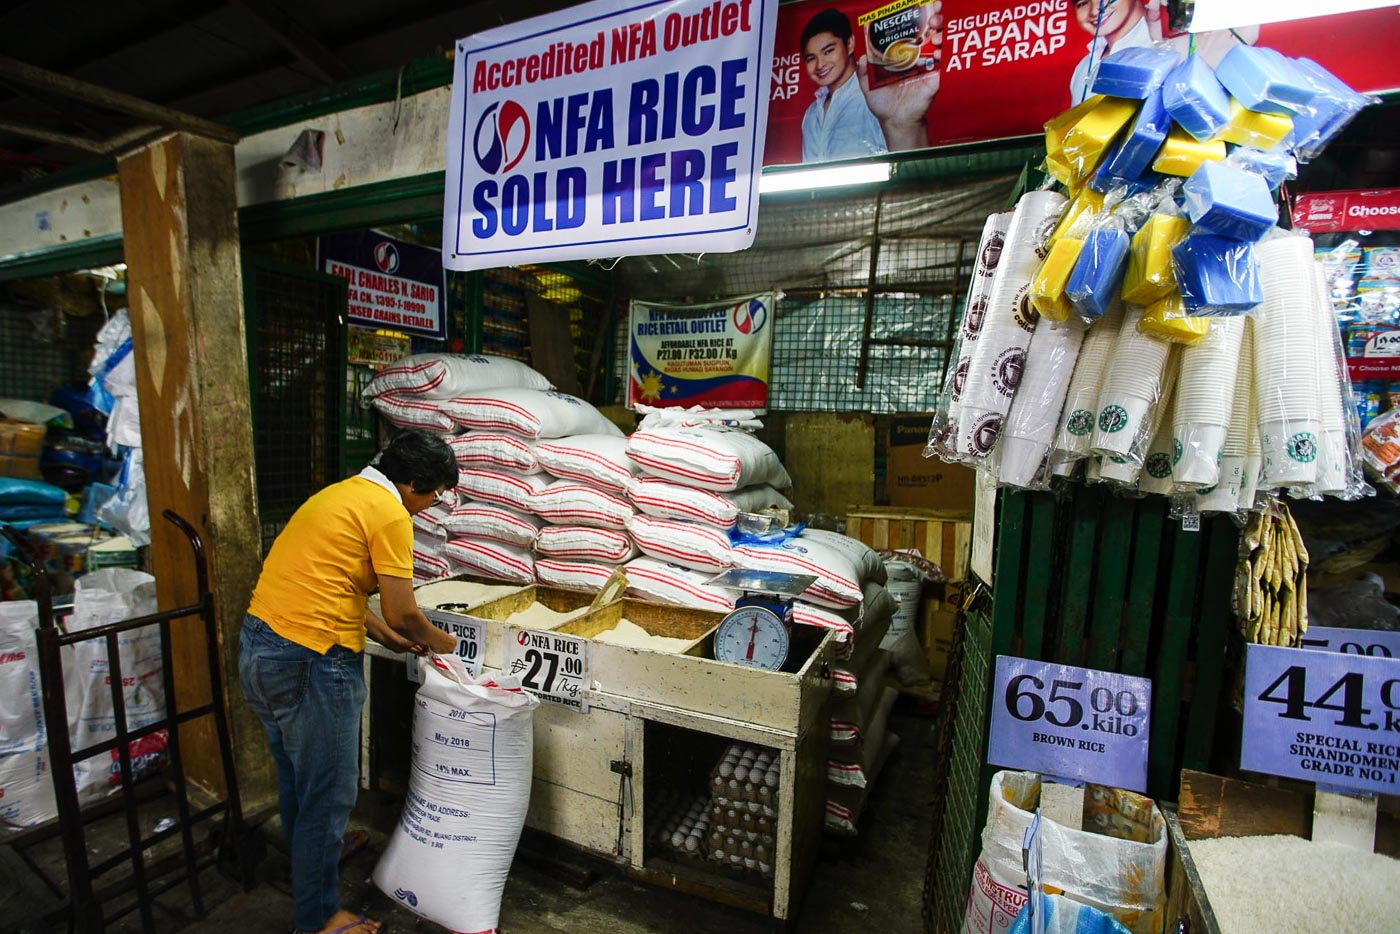 RICE ISSUES. Newly imported NFA rice is back at the Kamuning Public Market in Quezon City on June 26, 2018. File photo by Jire Carreon/Rappler